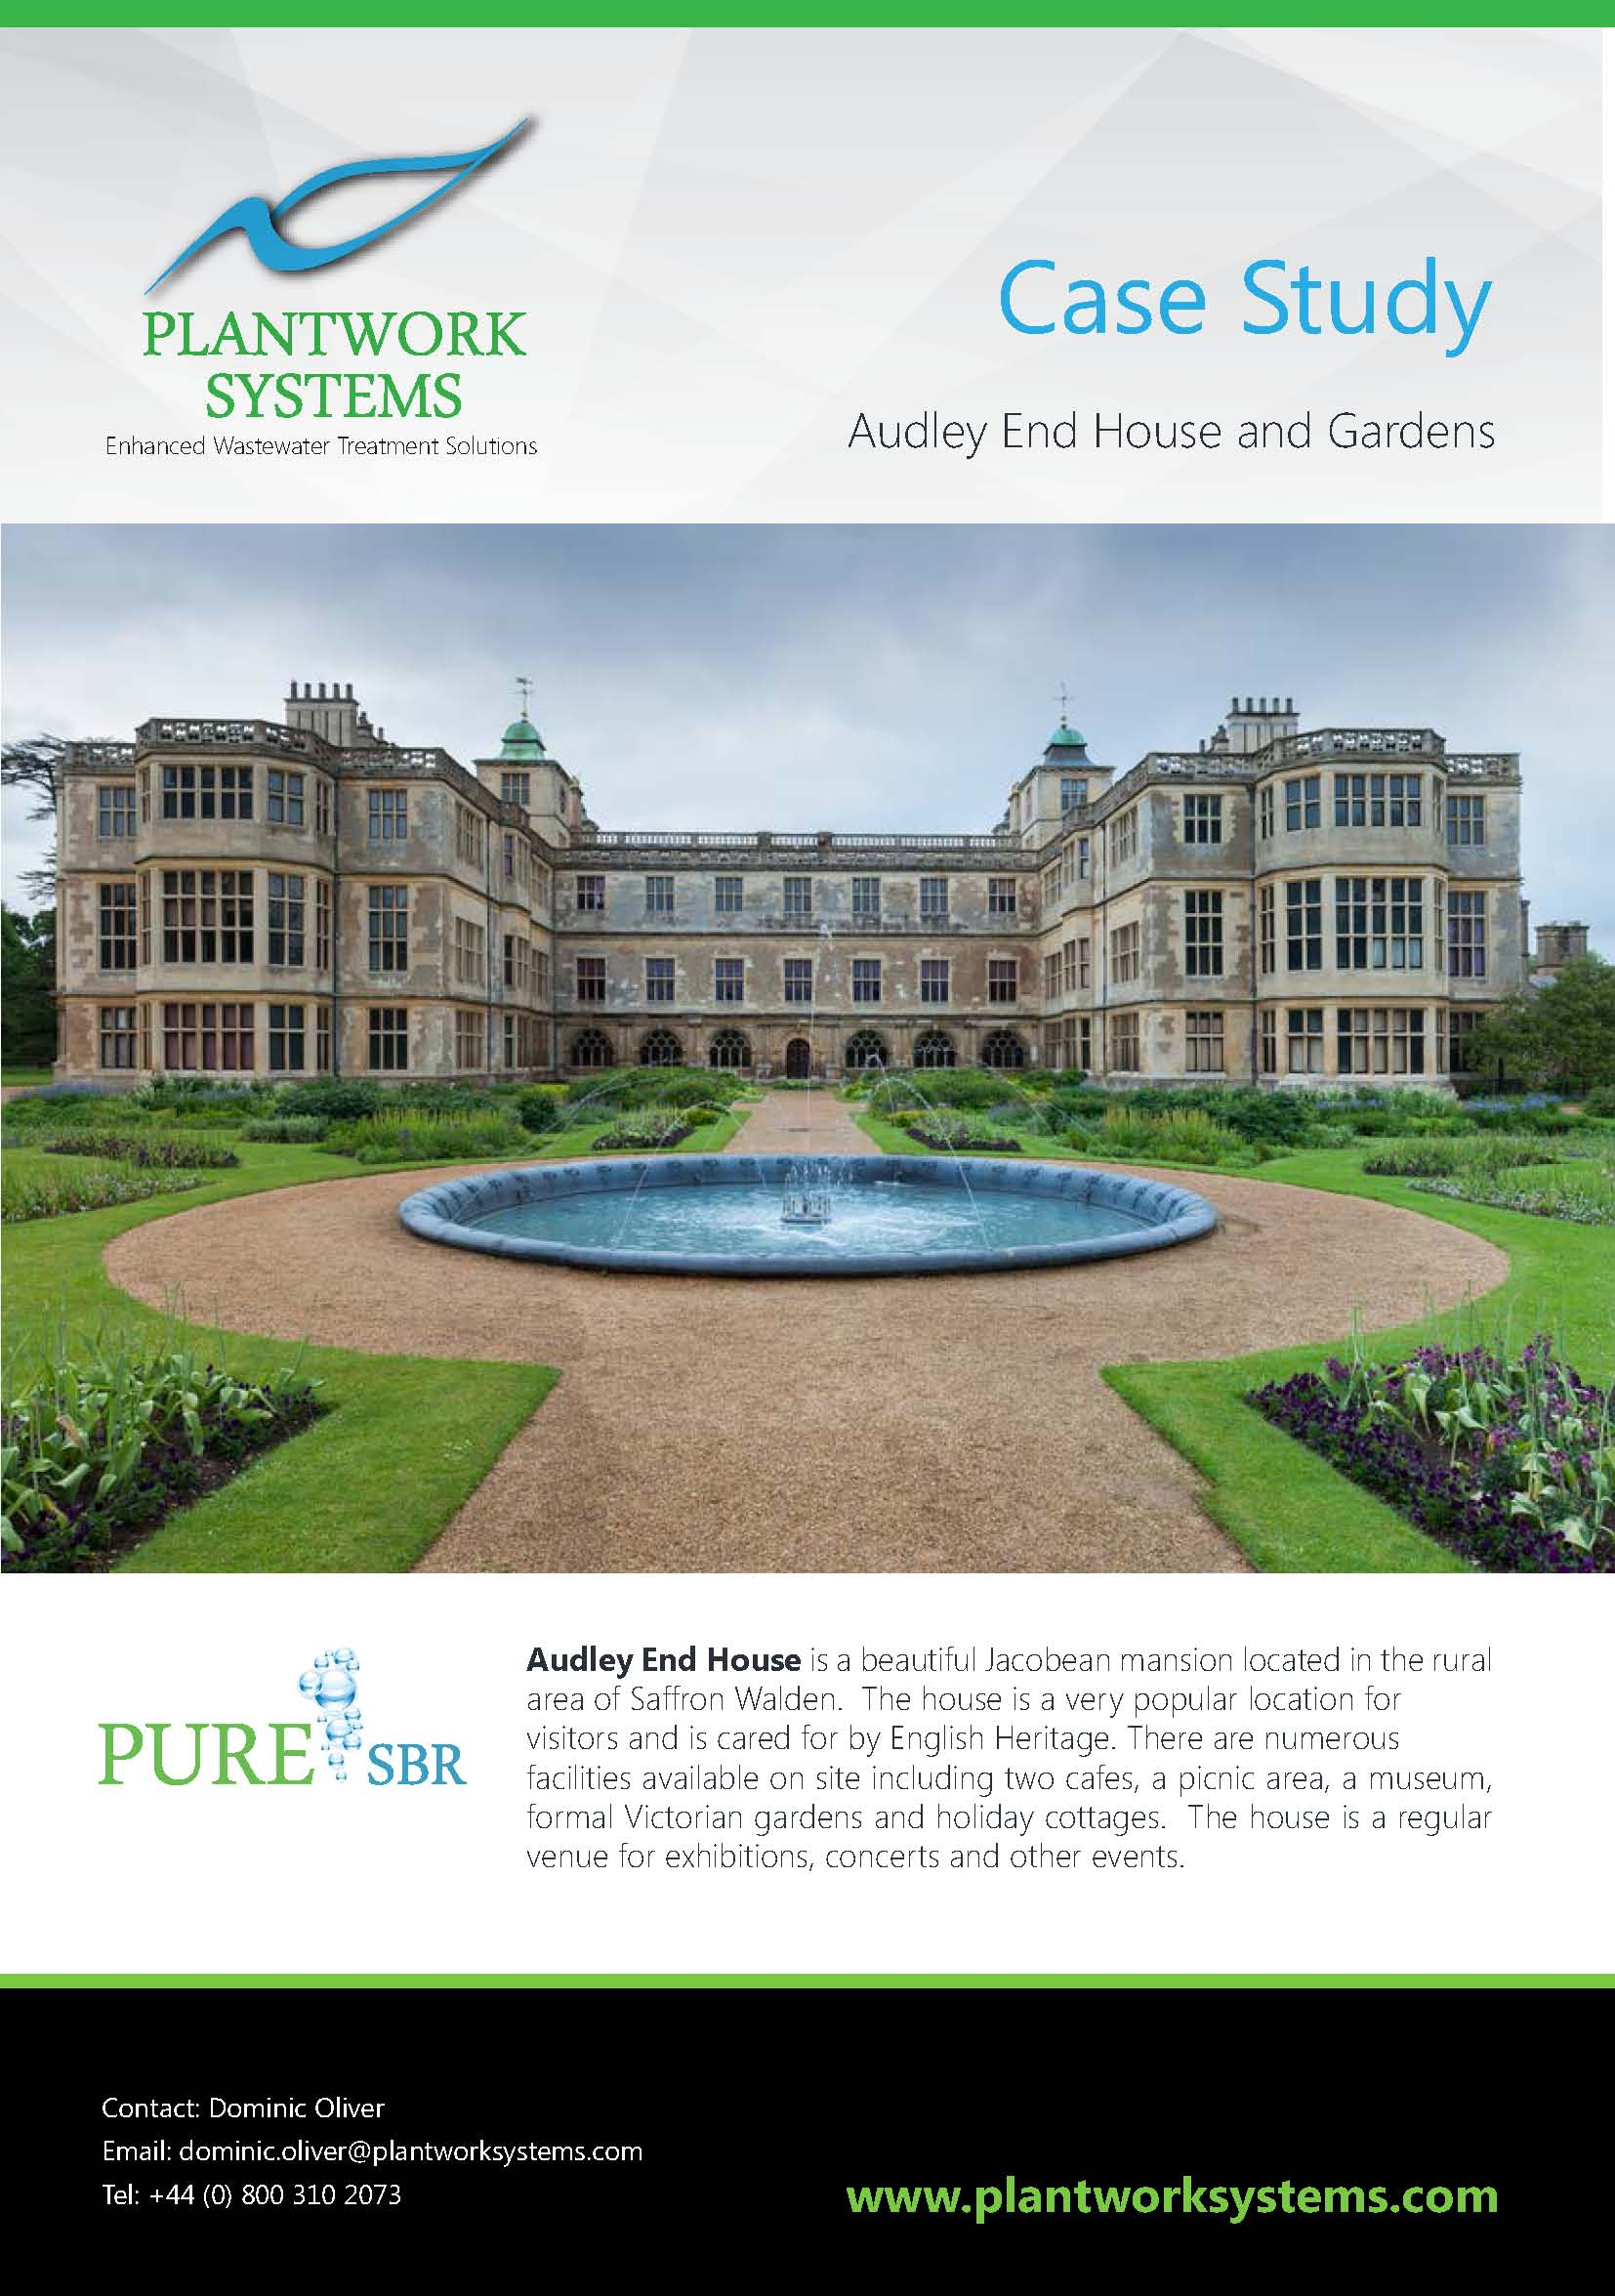 CASE STUDY-Audley End House